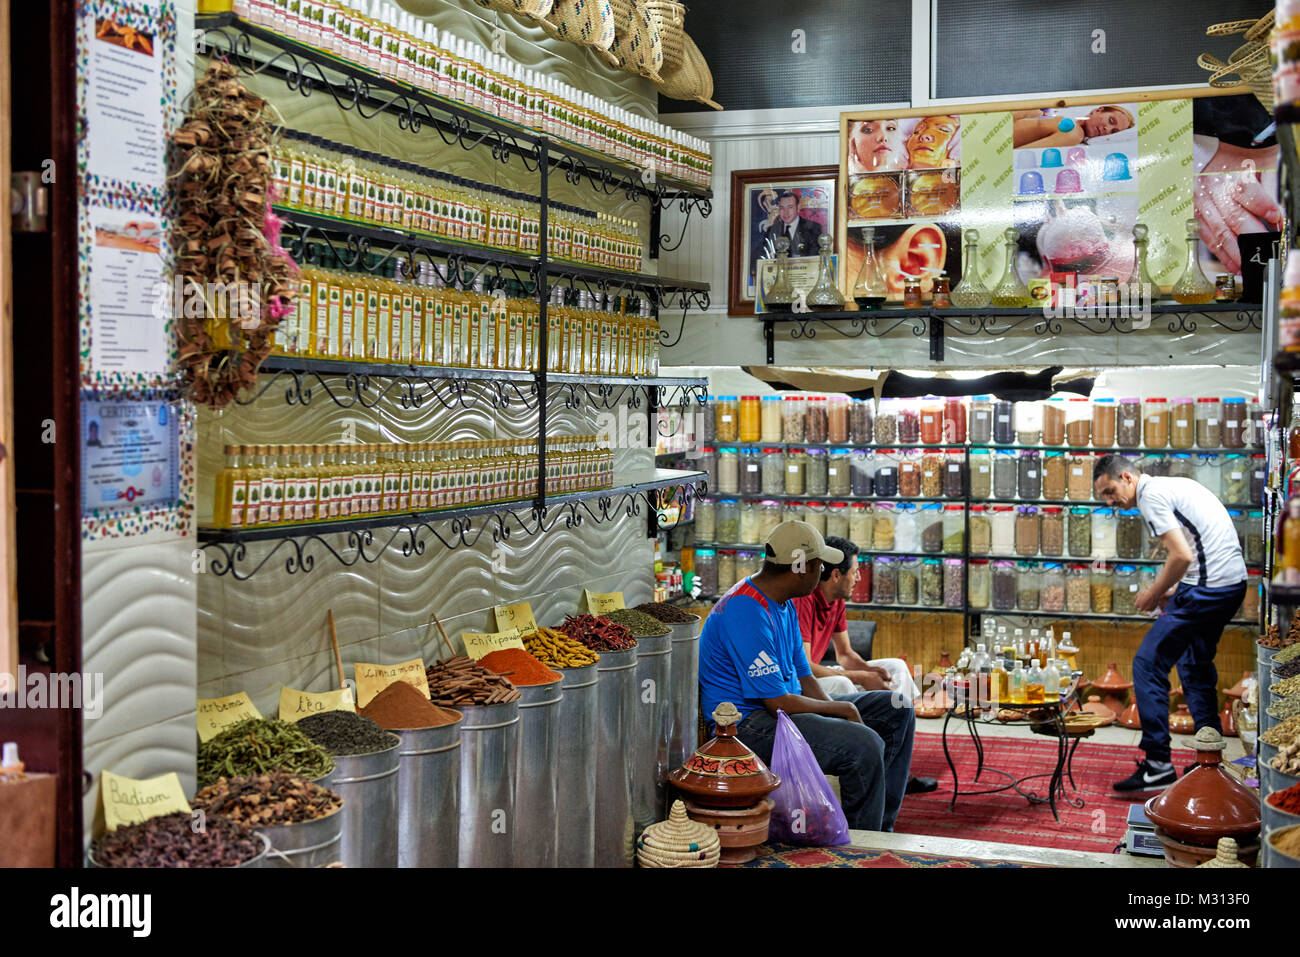 shop with perfume in old town (medina) of Fez, Morocco, Africa - Stock Image